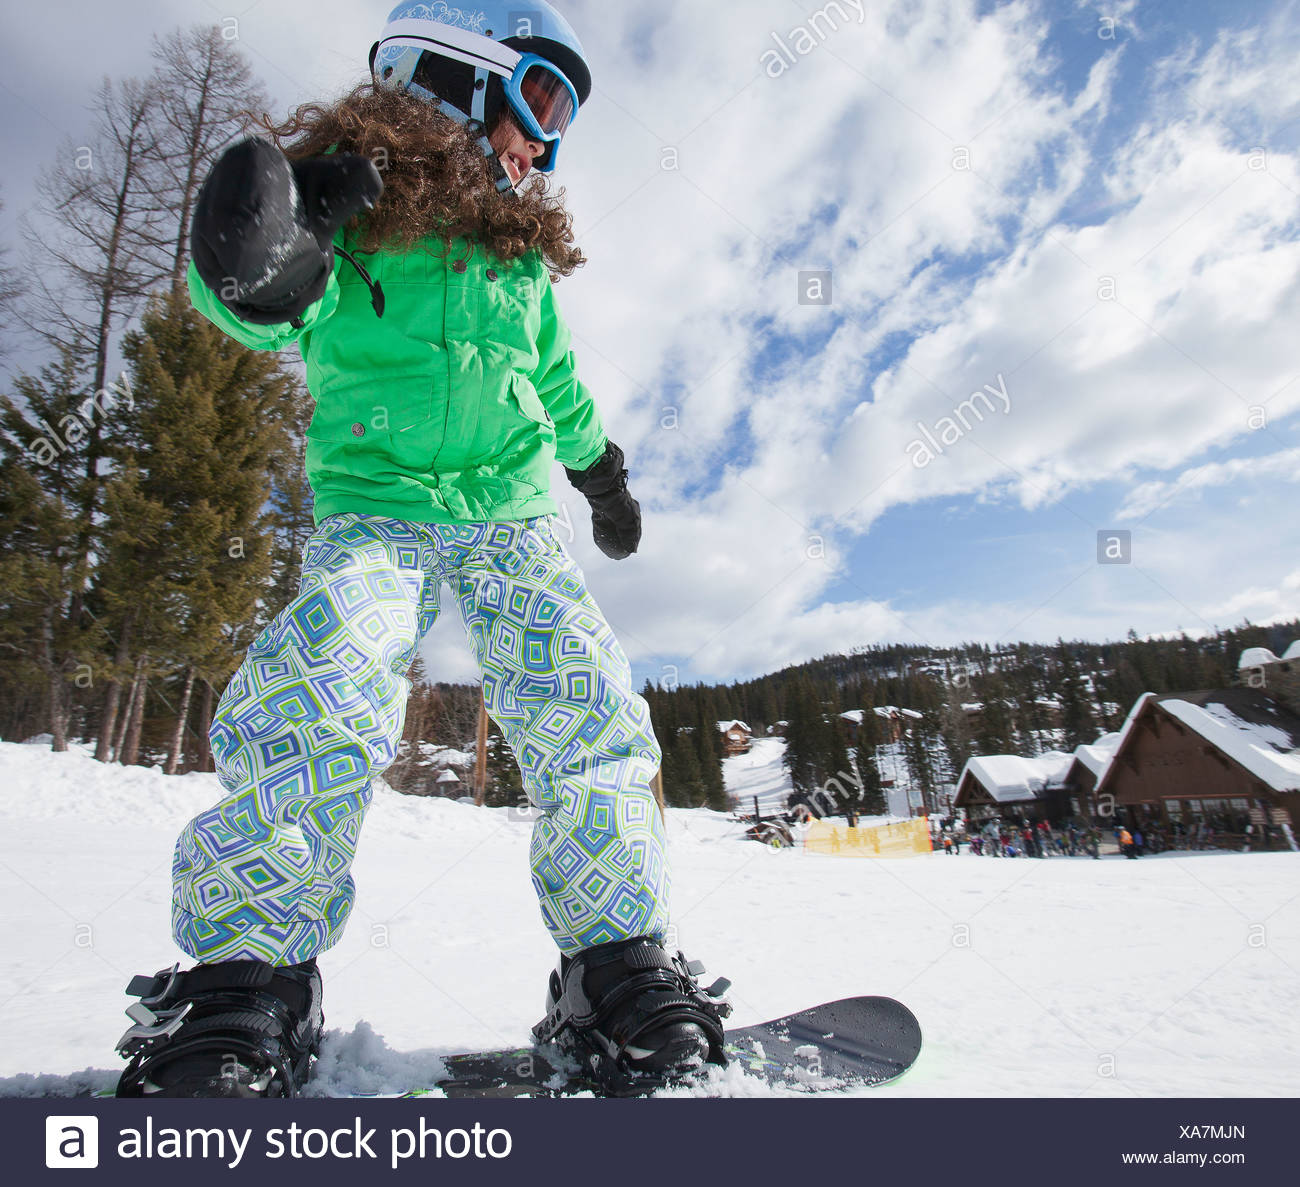 USA, Montana, Whitefish, Girl on snowboard - Stock Image